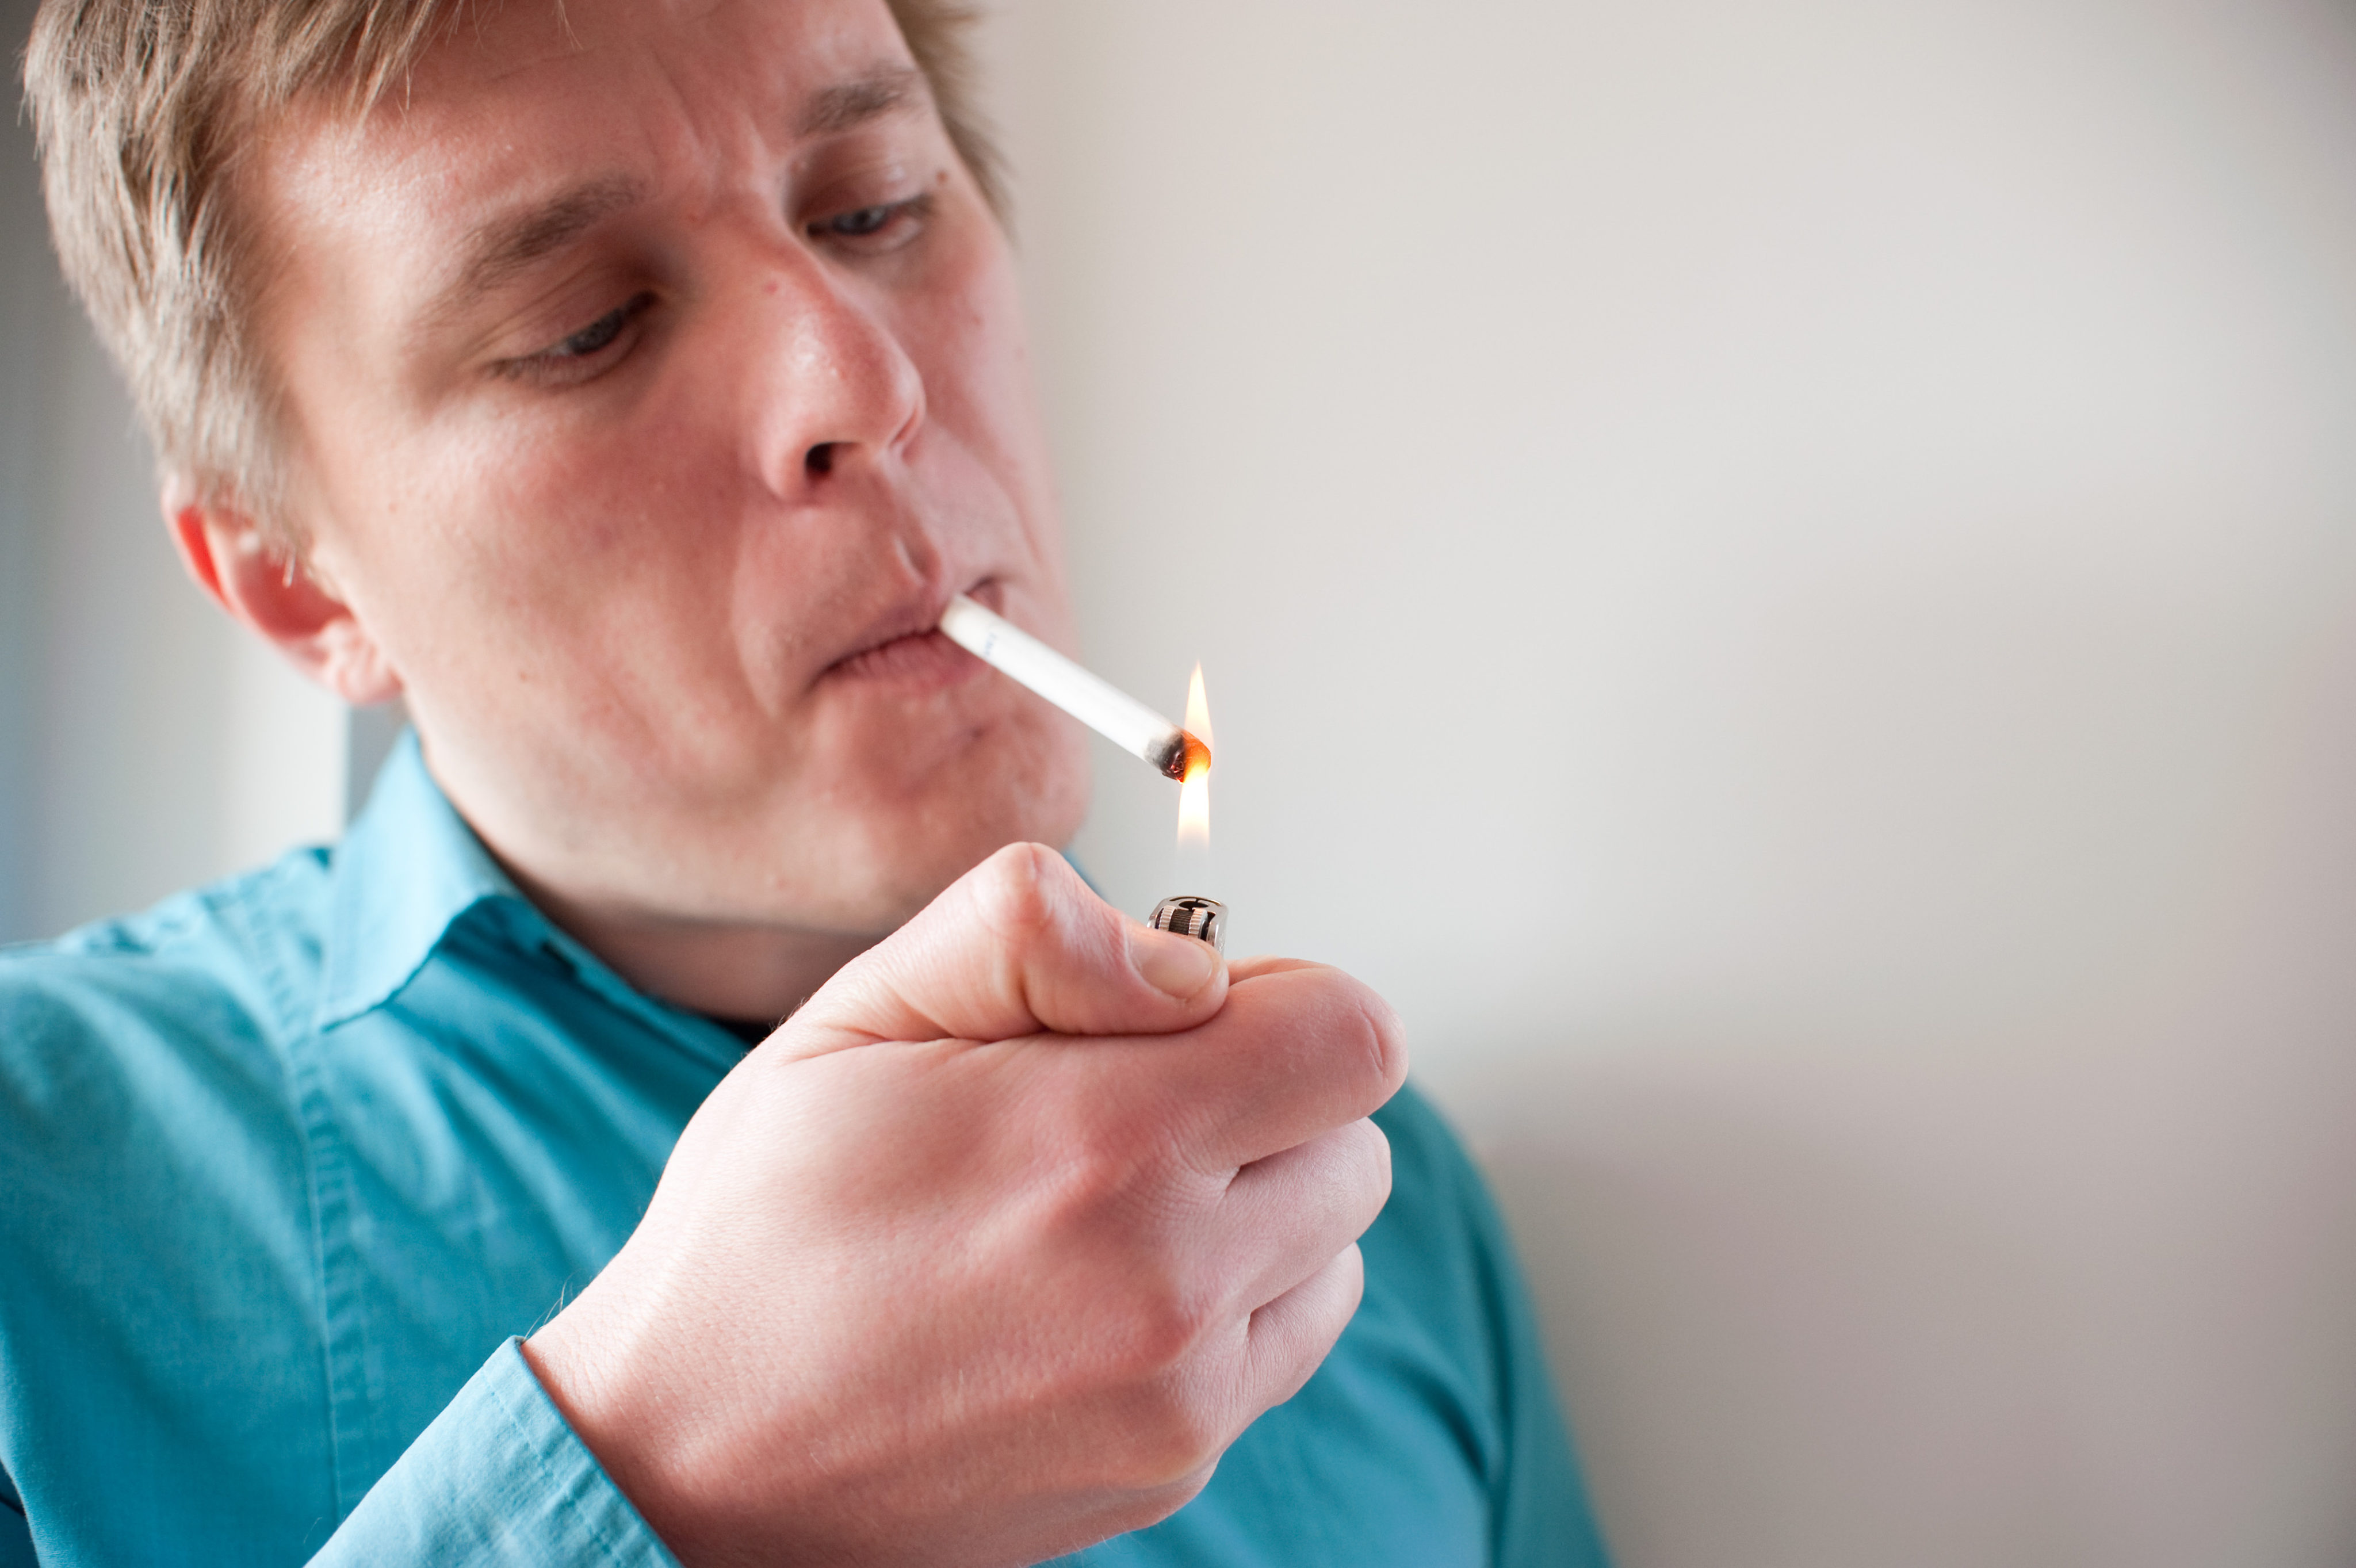 effects of smoking among teenagers This is a poll on your opinion of the health effects of smoking smoking as a teen can permanently stunt preventing tobacco use among youth and young.